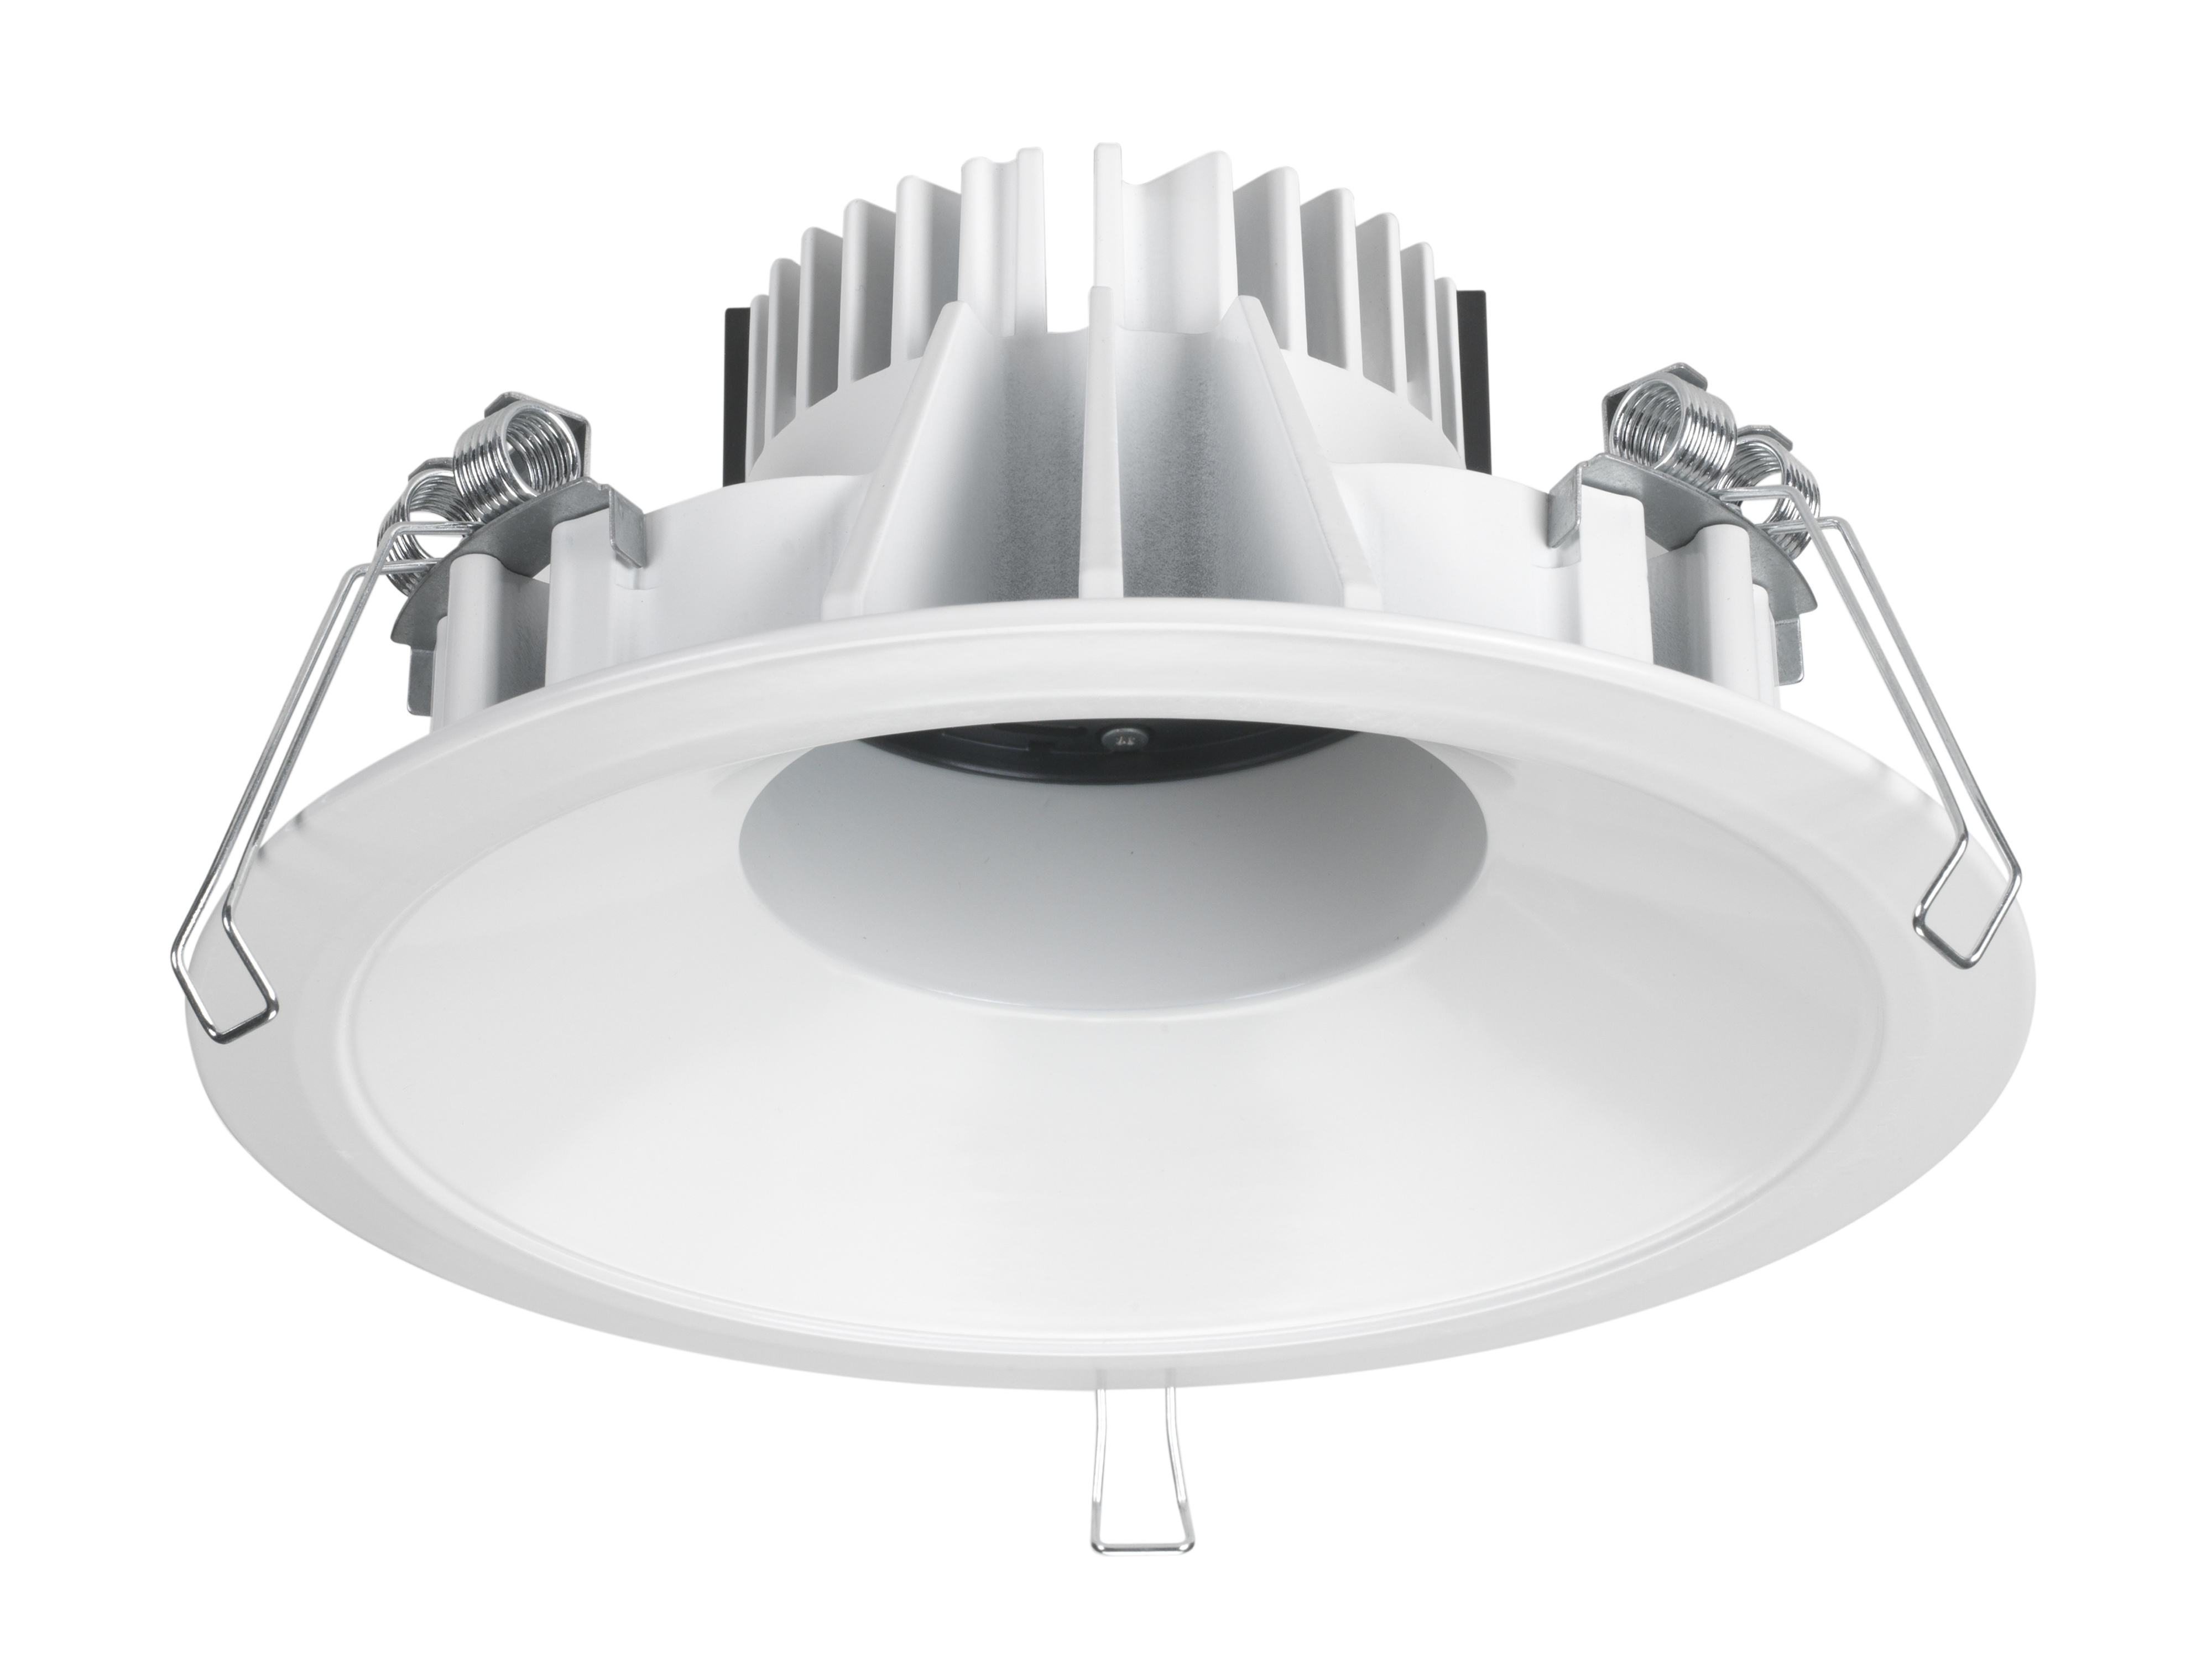 Toshiba LEDEUD00170S40 Interno Recessed lighting spot 24W Bianco faretto di illuminazione